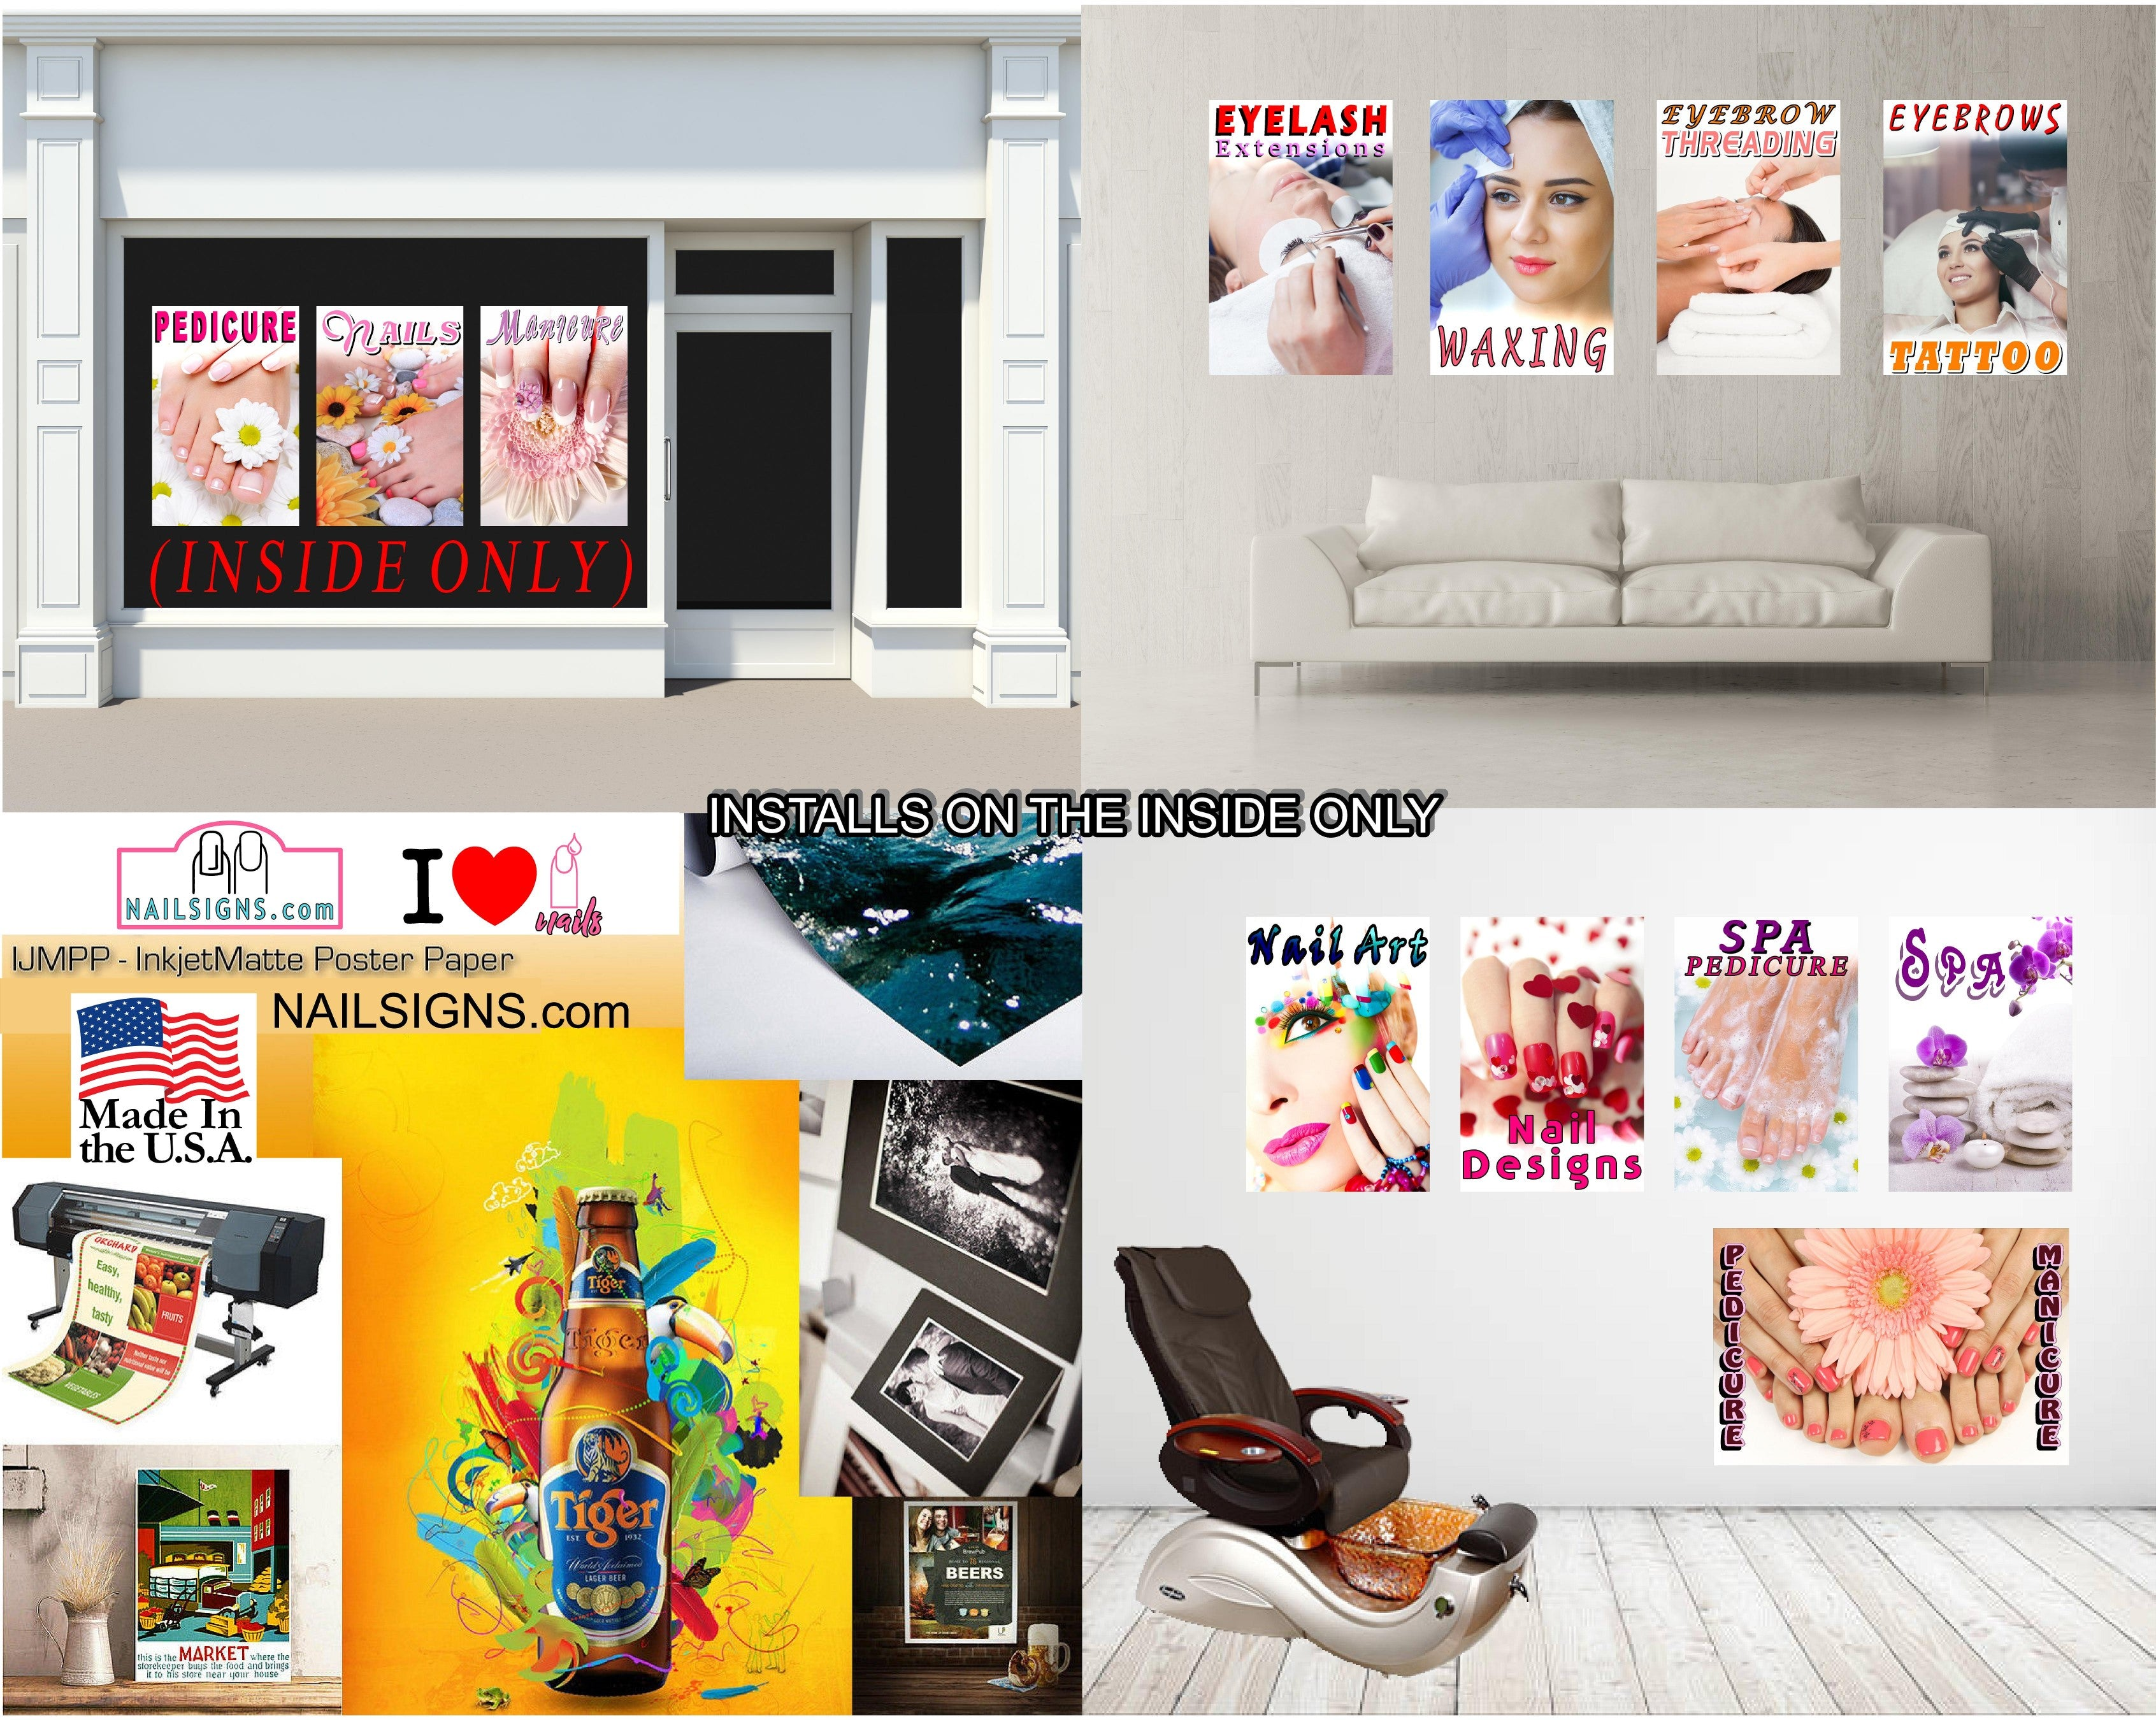 Permanent 14 Photo-Realistic Paper Poster Premium Matte Interior Inside Sign Wall Window Non-Laminated Makeup Eyebrows Lip Eyeliner Microblading Vertical